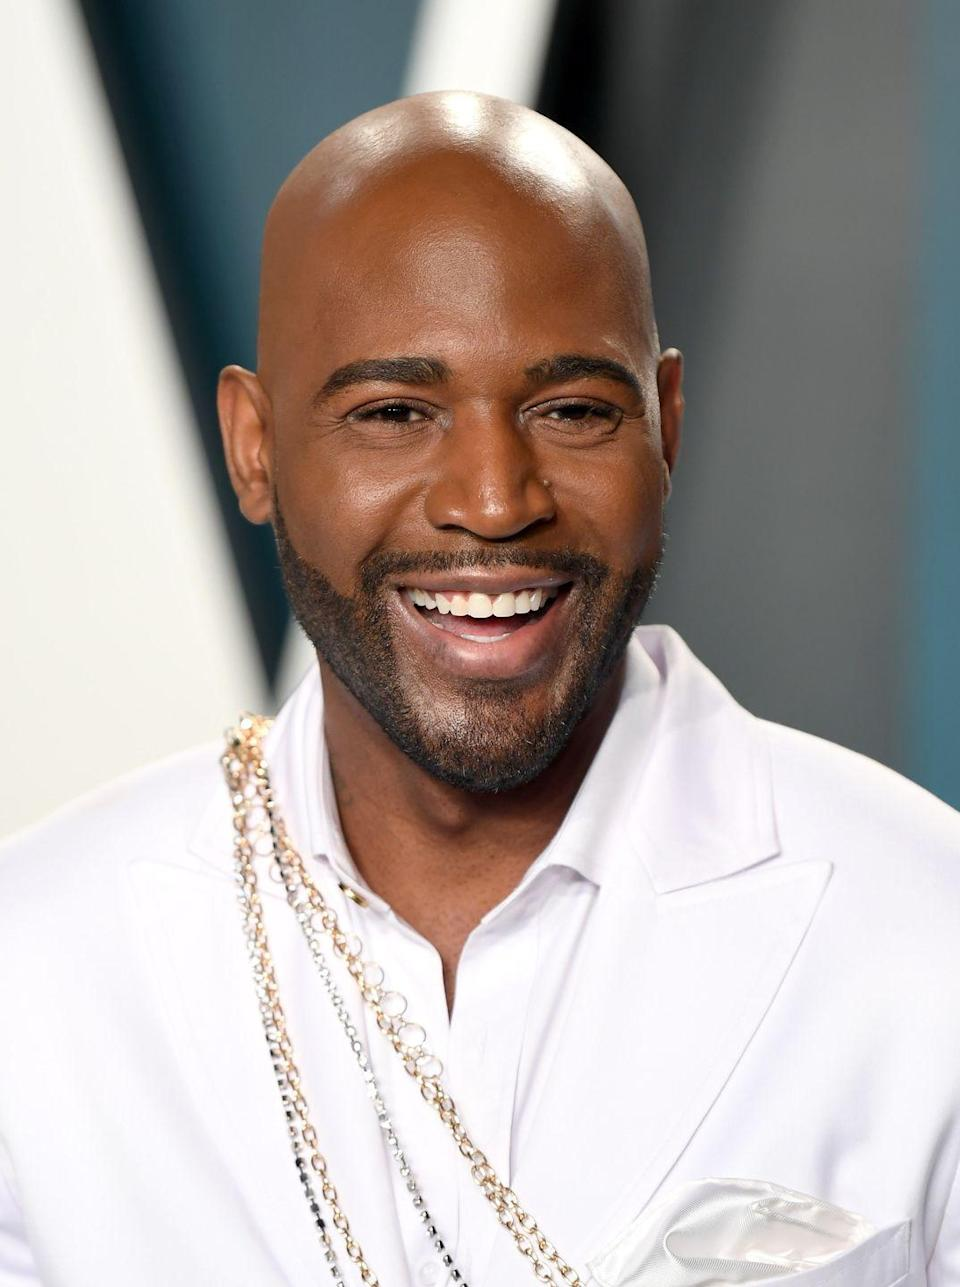 """<p>After his season ended, Brown appeared in <a href=""""https://www.imdb.com/name/nm1753363/"""" rel=""""nofollow noopener"""" target=""""_blank"""" data-ylk=""""slk:MTV's spin-off show, The Challenge"""" class=""""link rapid-noclick-resp"""">MTV's spin-off show, <em>The Challenge</em></a>. He didn't return to TV until 2012, when he began appearing on talk shows <a href=""""https://www.imdb.com/name/nm1753363/"""" rel=""""nofollow noopener"""" target=""""_blank"""" data-ylk=""""slk:as a correspondent"""" class=""""link rapid-noclick-resp"""">as a correspondent</a>. In 2018, his career exploded when he was cast in <a href=""""https://www.imdb.com/name/nm1753363/"""" rel=""""nofollow noopener"""" target=""""_blank"""" data-ylk=""""slk:Netflix's Queer Eye"""" class=""""link rapid-noclick-resp"""">Netflix's <em>Queer Eye</em></a> as the culture expert. Following his newfound success, he released a memoir and a podcast. </p>"""